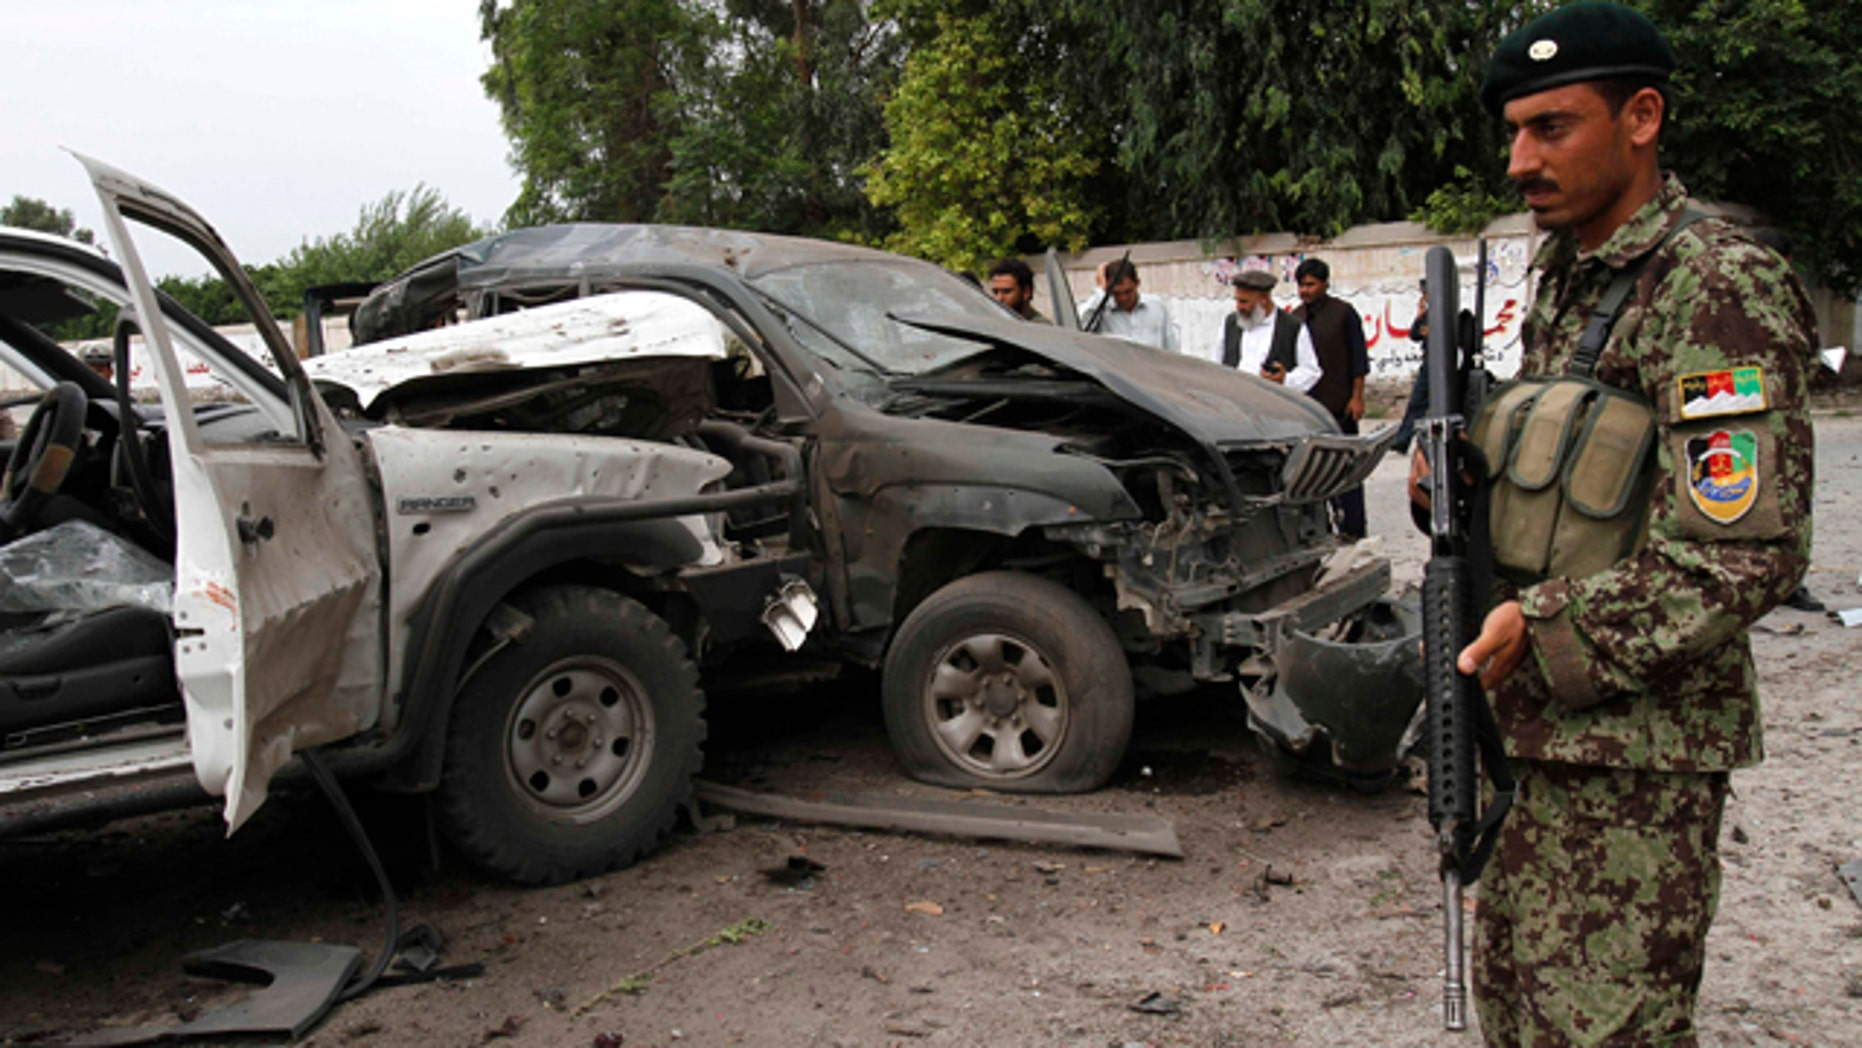 Aug. 2, 2010: Afghans gather at the scene of an attack on a presidential adviser in Jalalabad, east of Kabul, Afghanistan. Militants attacked the second government official in the east on the same day.